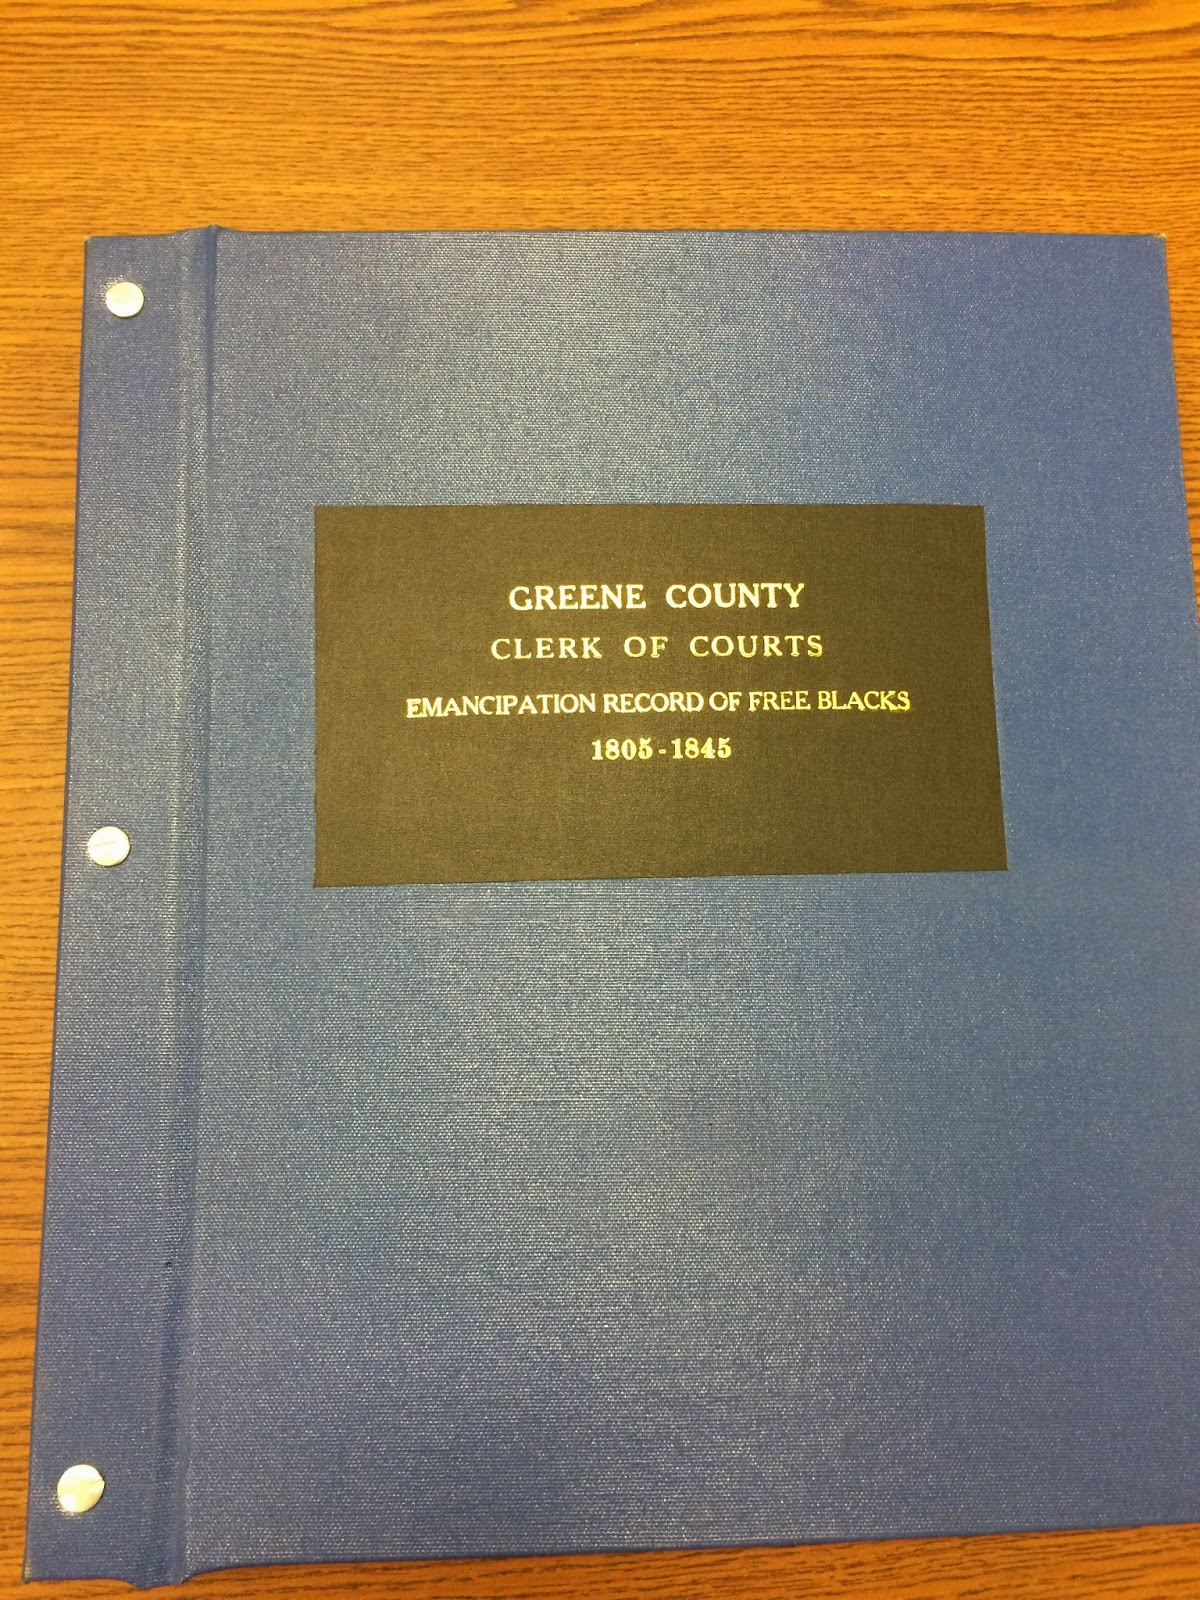 The Overachieving Archivist: Greene County Records Center and